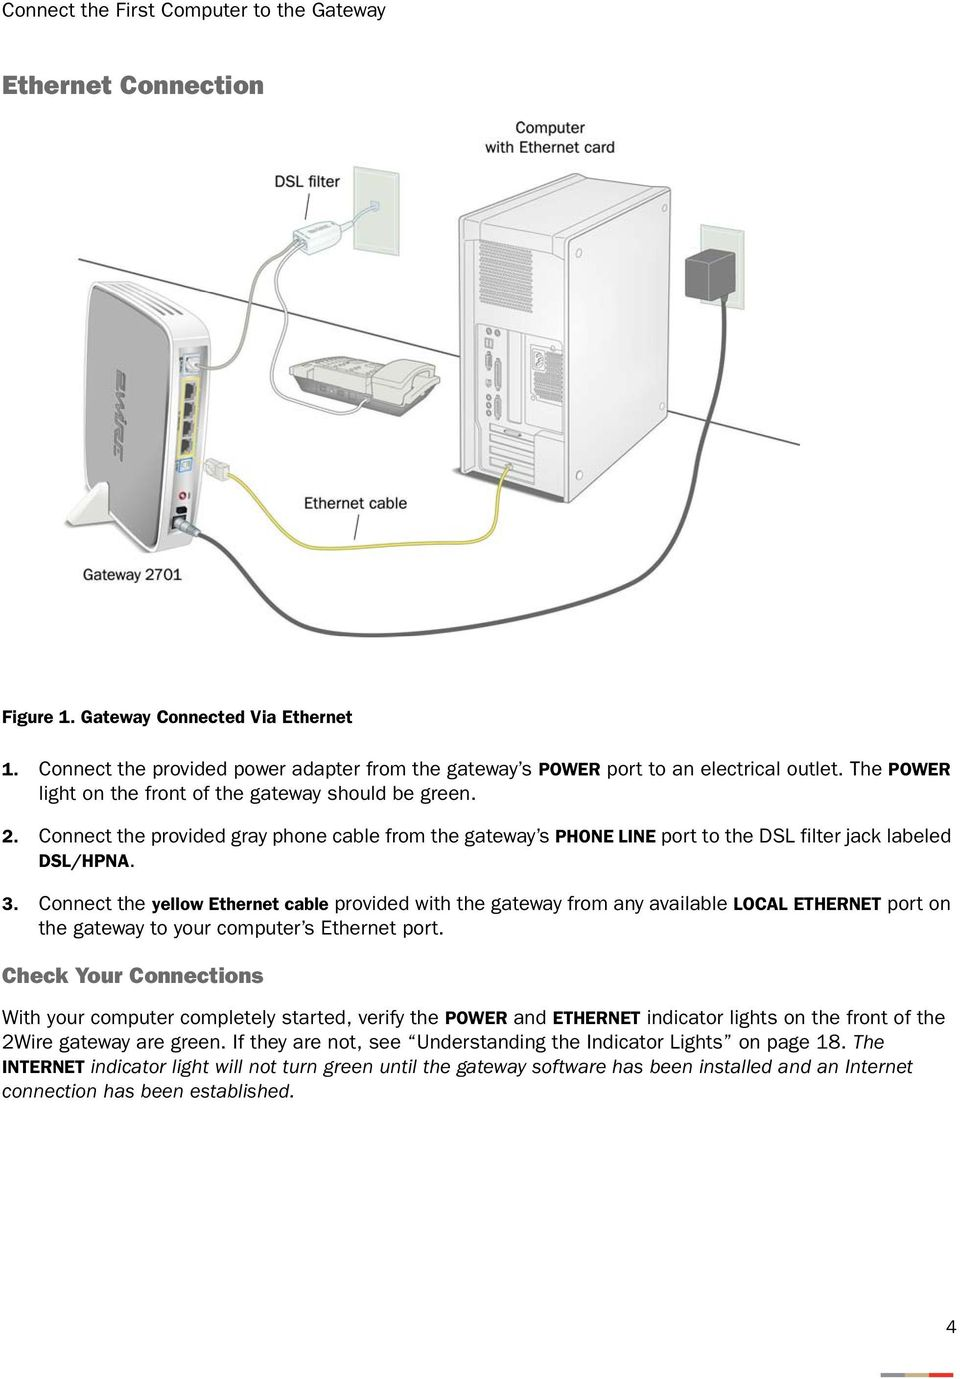 medium resolution of connect the yellow ethernet cable provided with the gateway from any available local ethernet port on